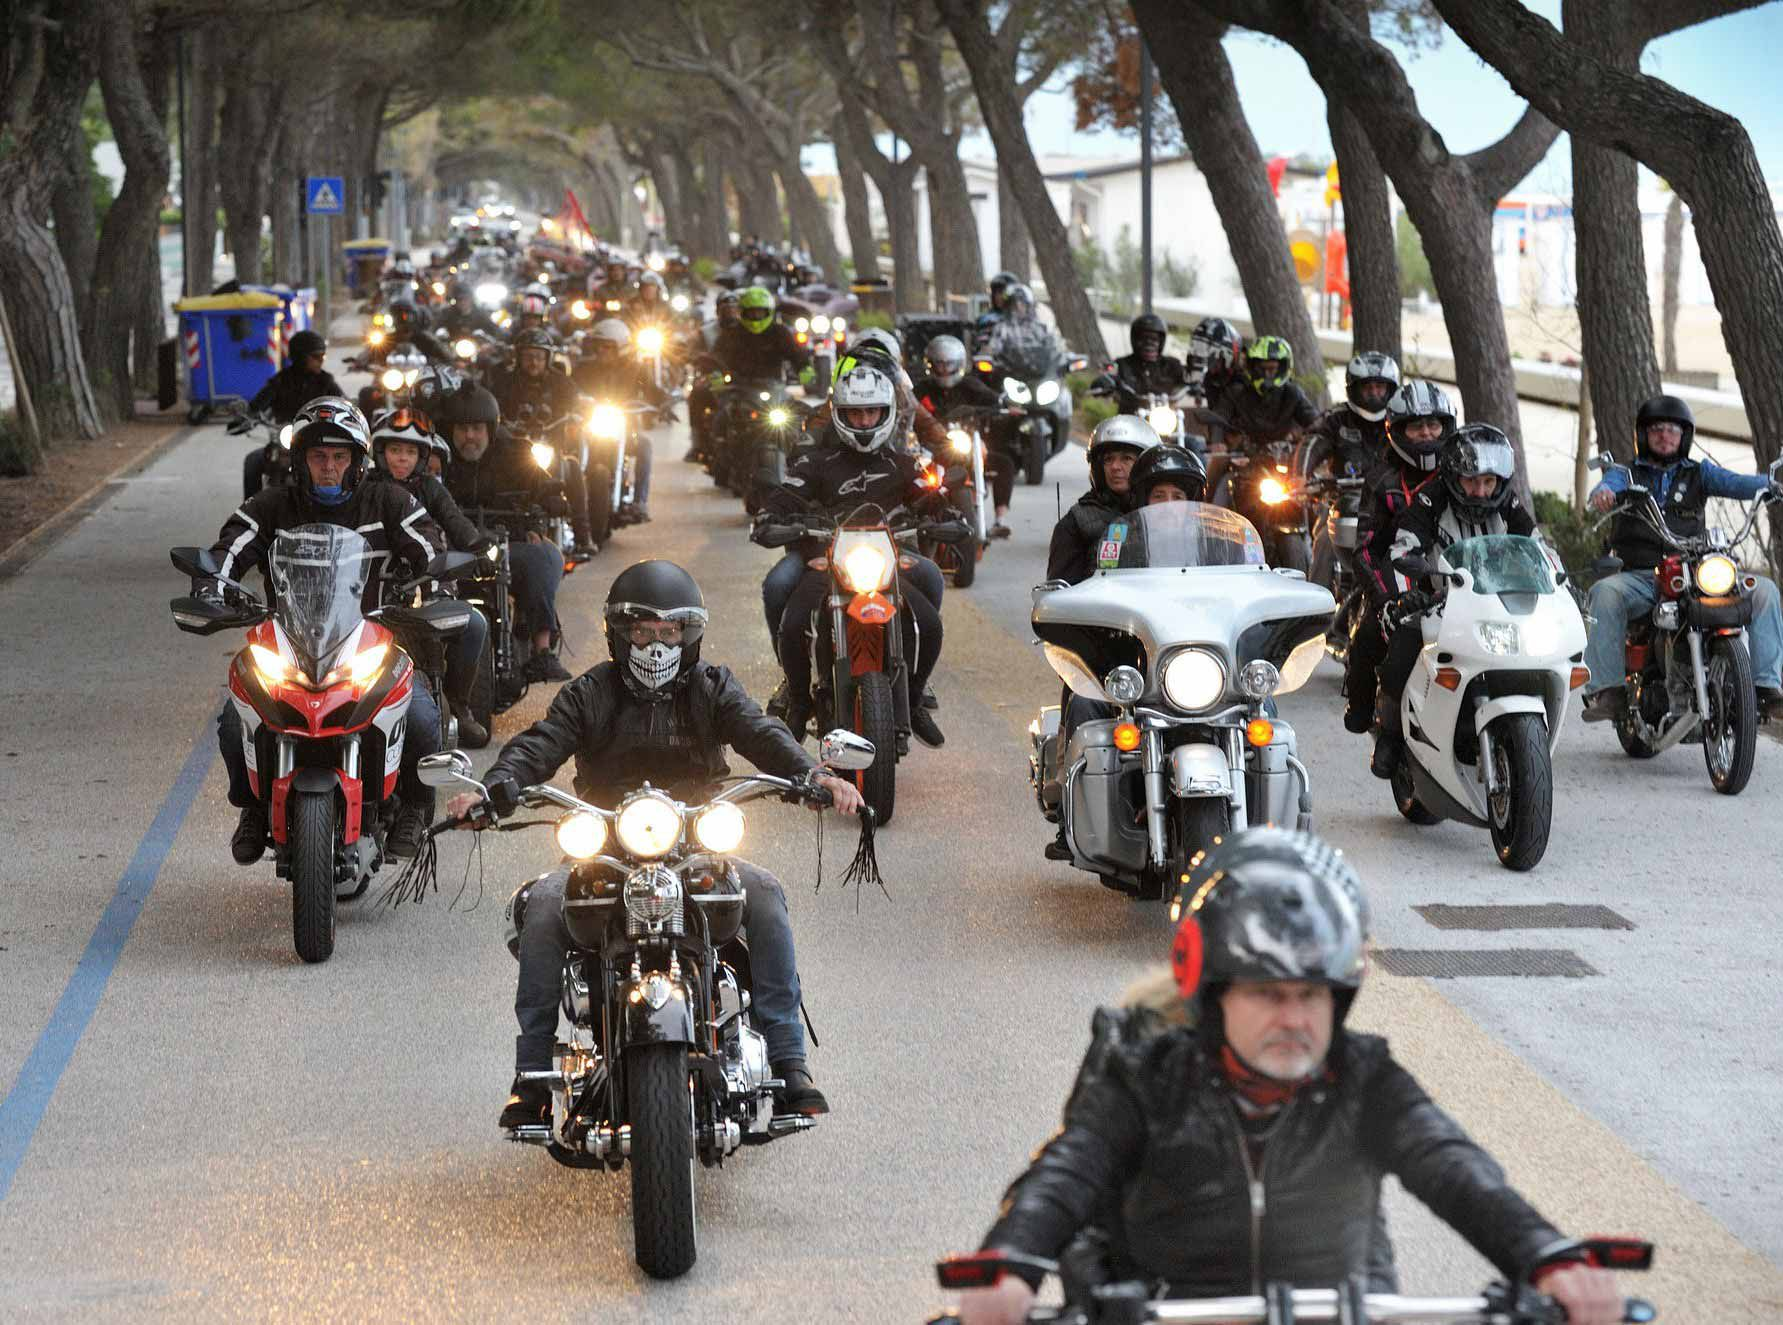 Thousands of riders participate in Biker Fest's closing event, the Parade of Lights.